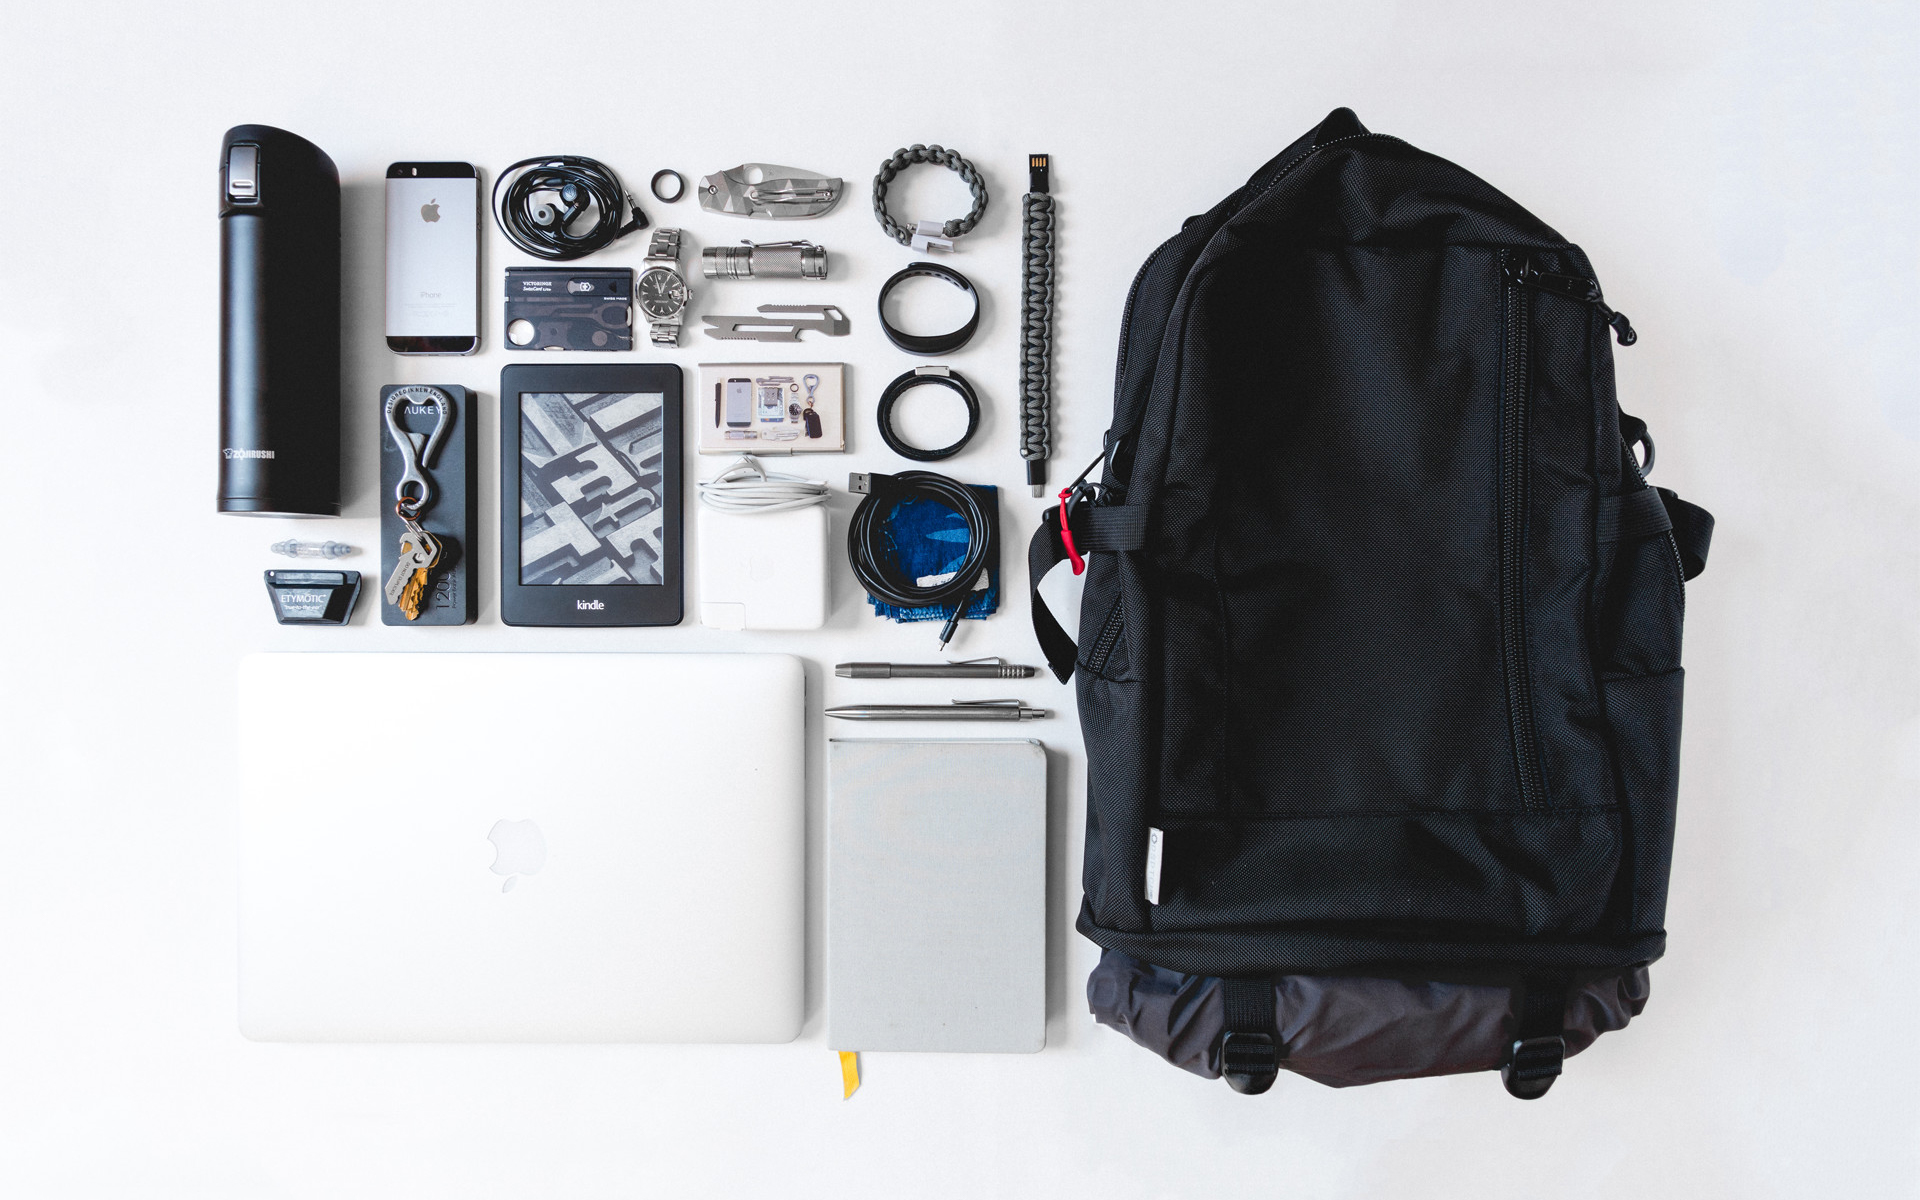 10 Laptop Bags to Everyday Carry Back to School